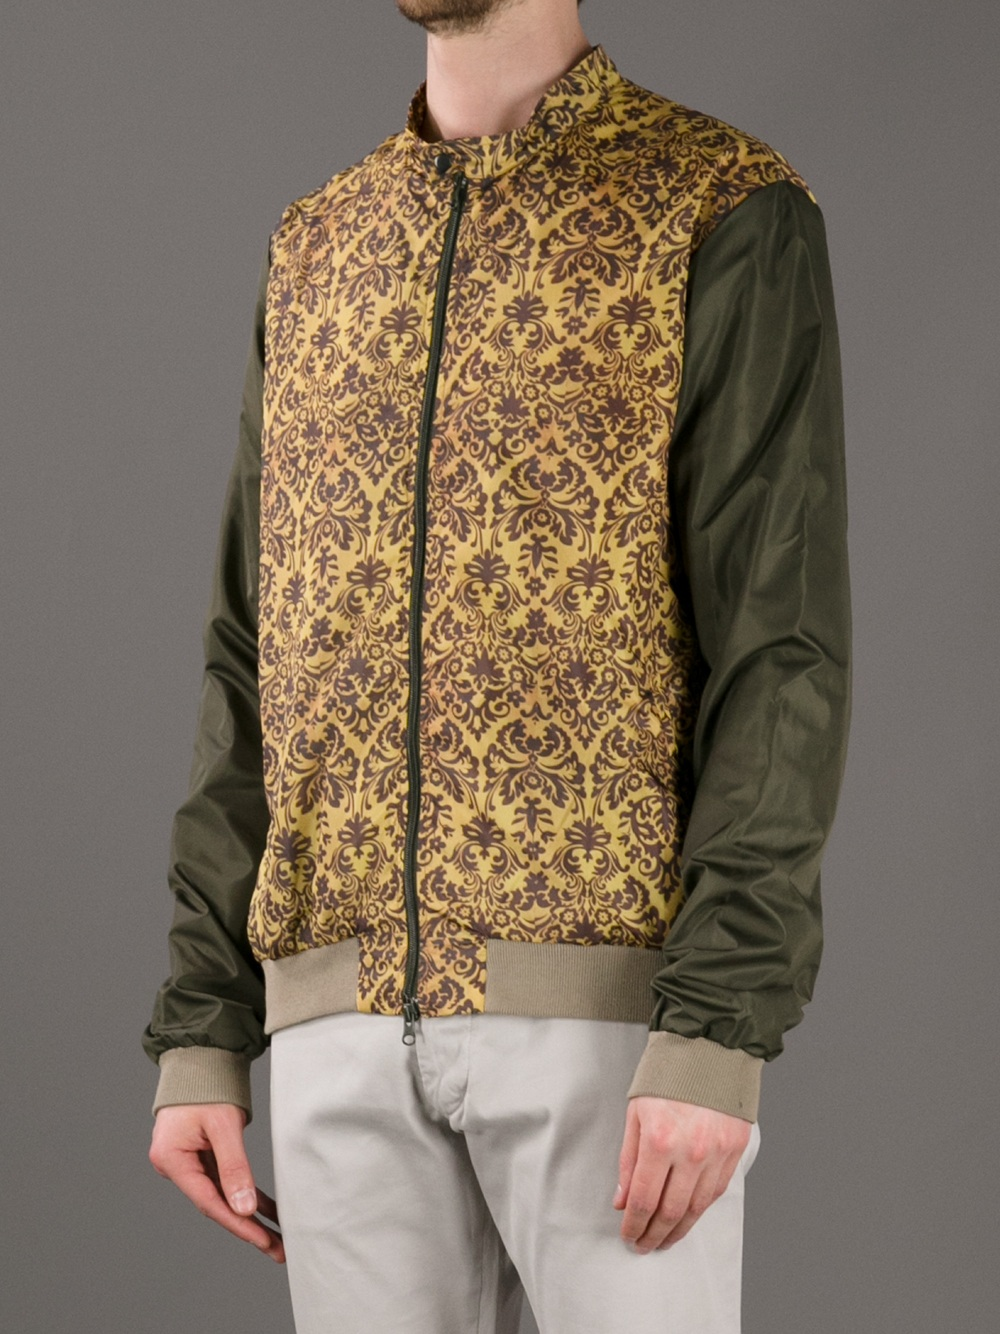 Fifteen & Half Paisley-Print Bomber Jacket in Green for Men